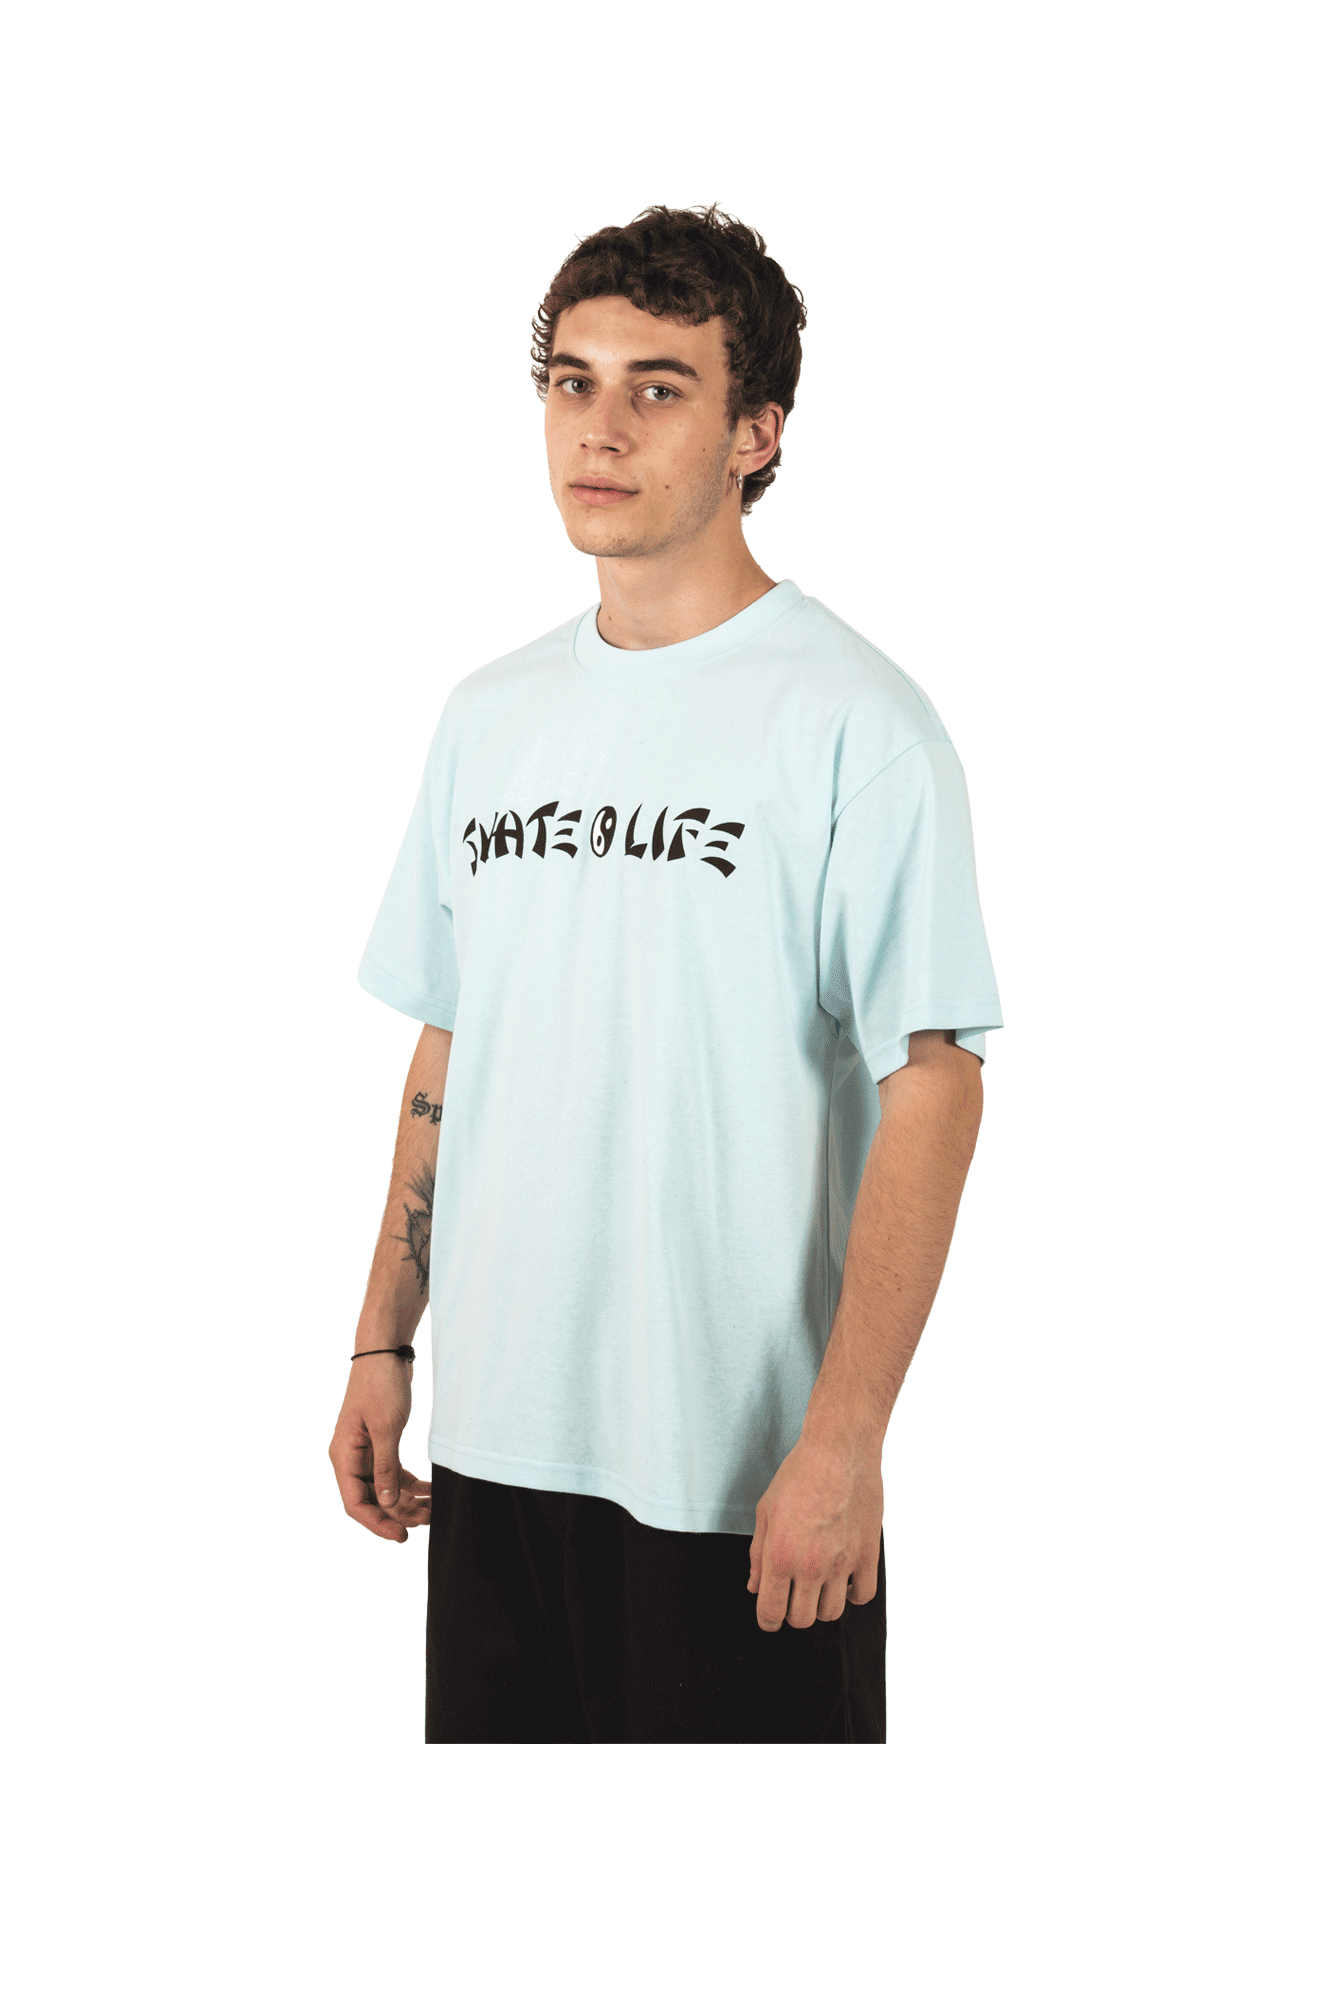 Polar T-Shirts Skatelife Tee Green POL-SKATE#TEE#AQUA#S - One Block Down